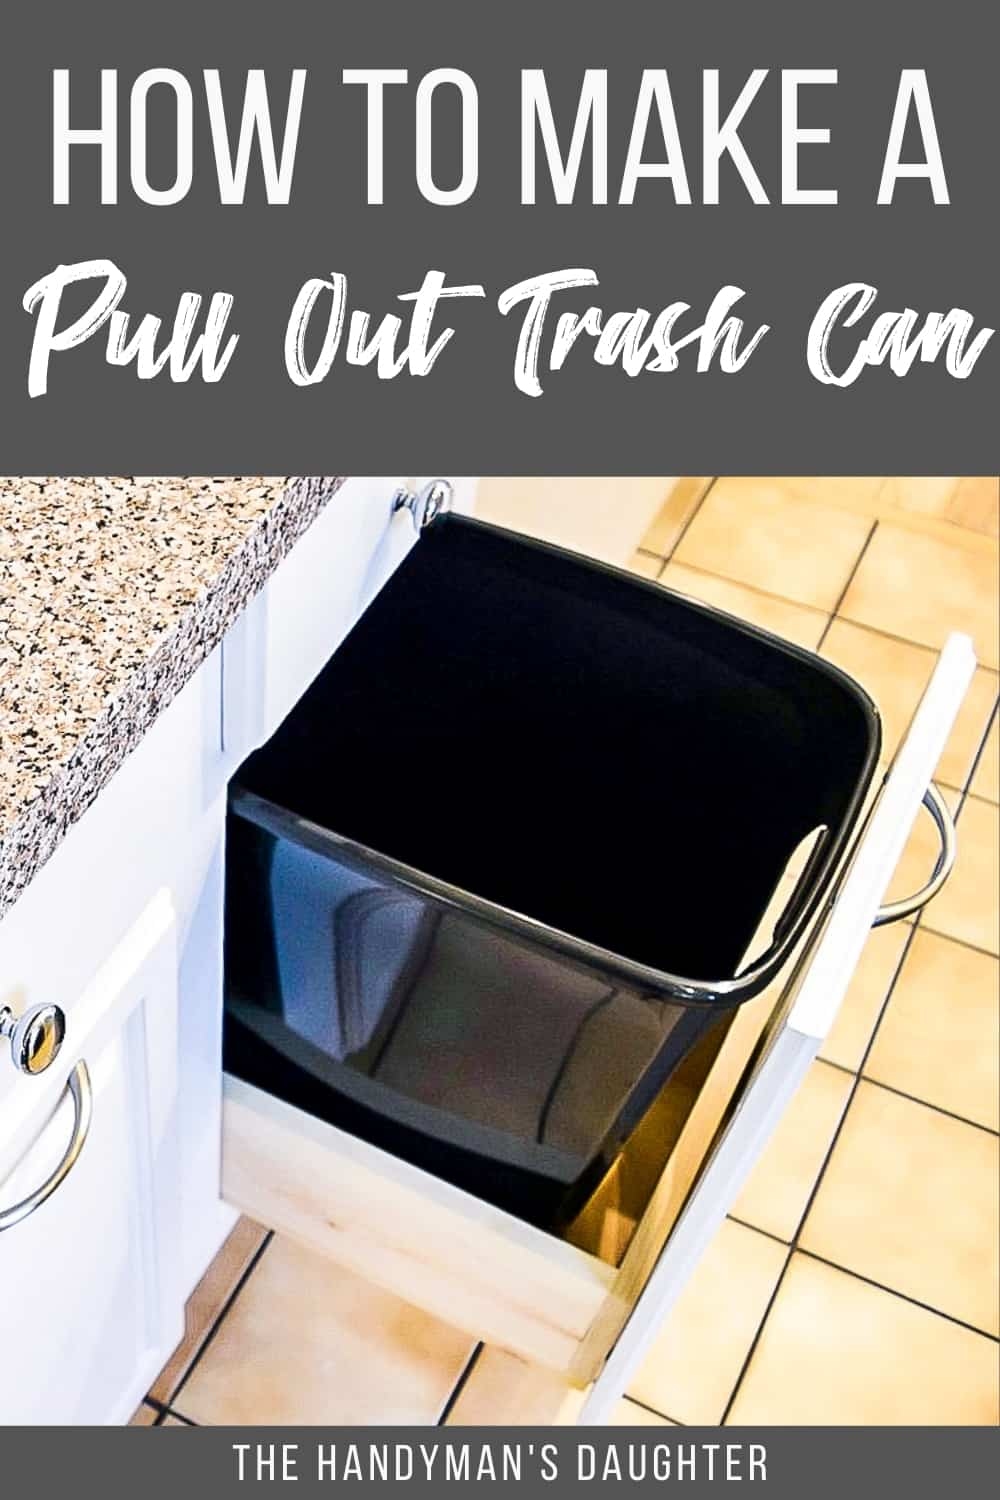 How to Make a Pull Out Trash Can